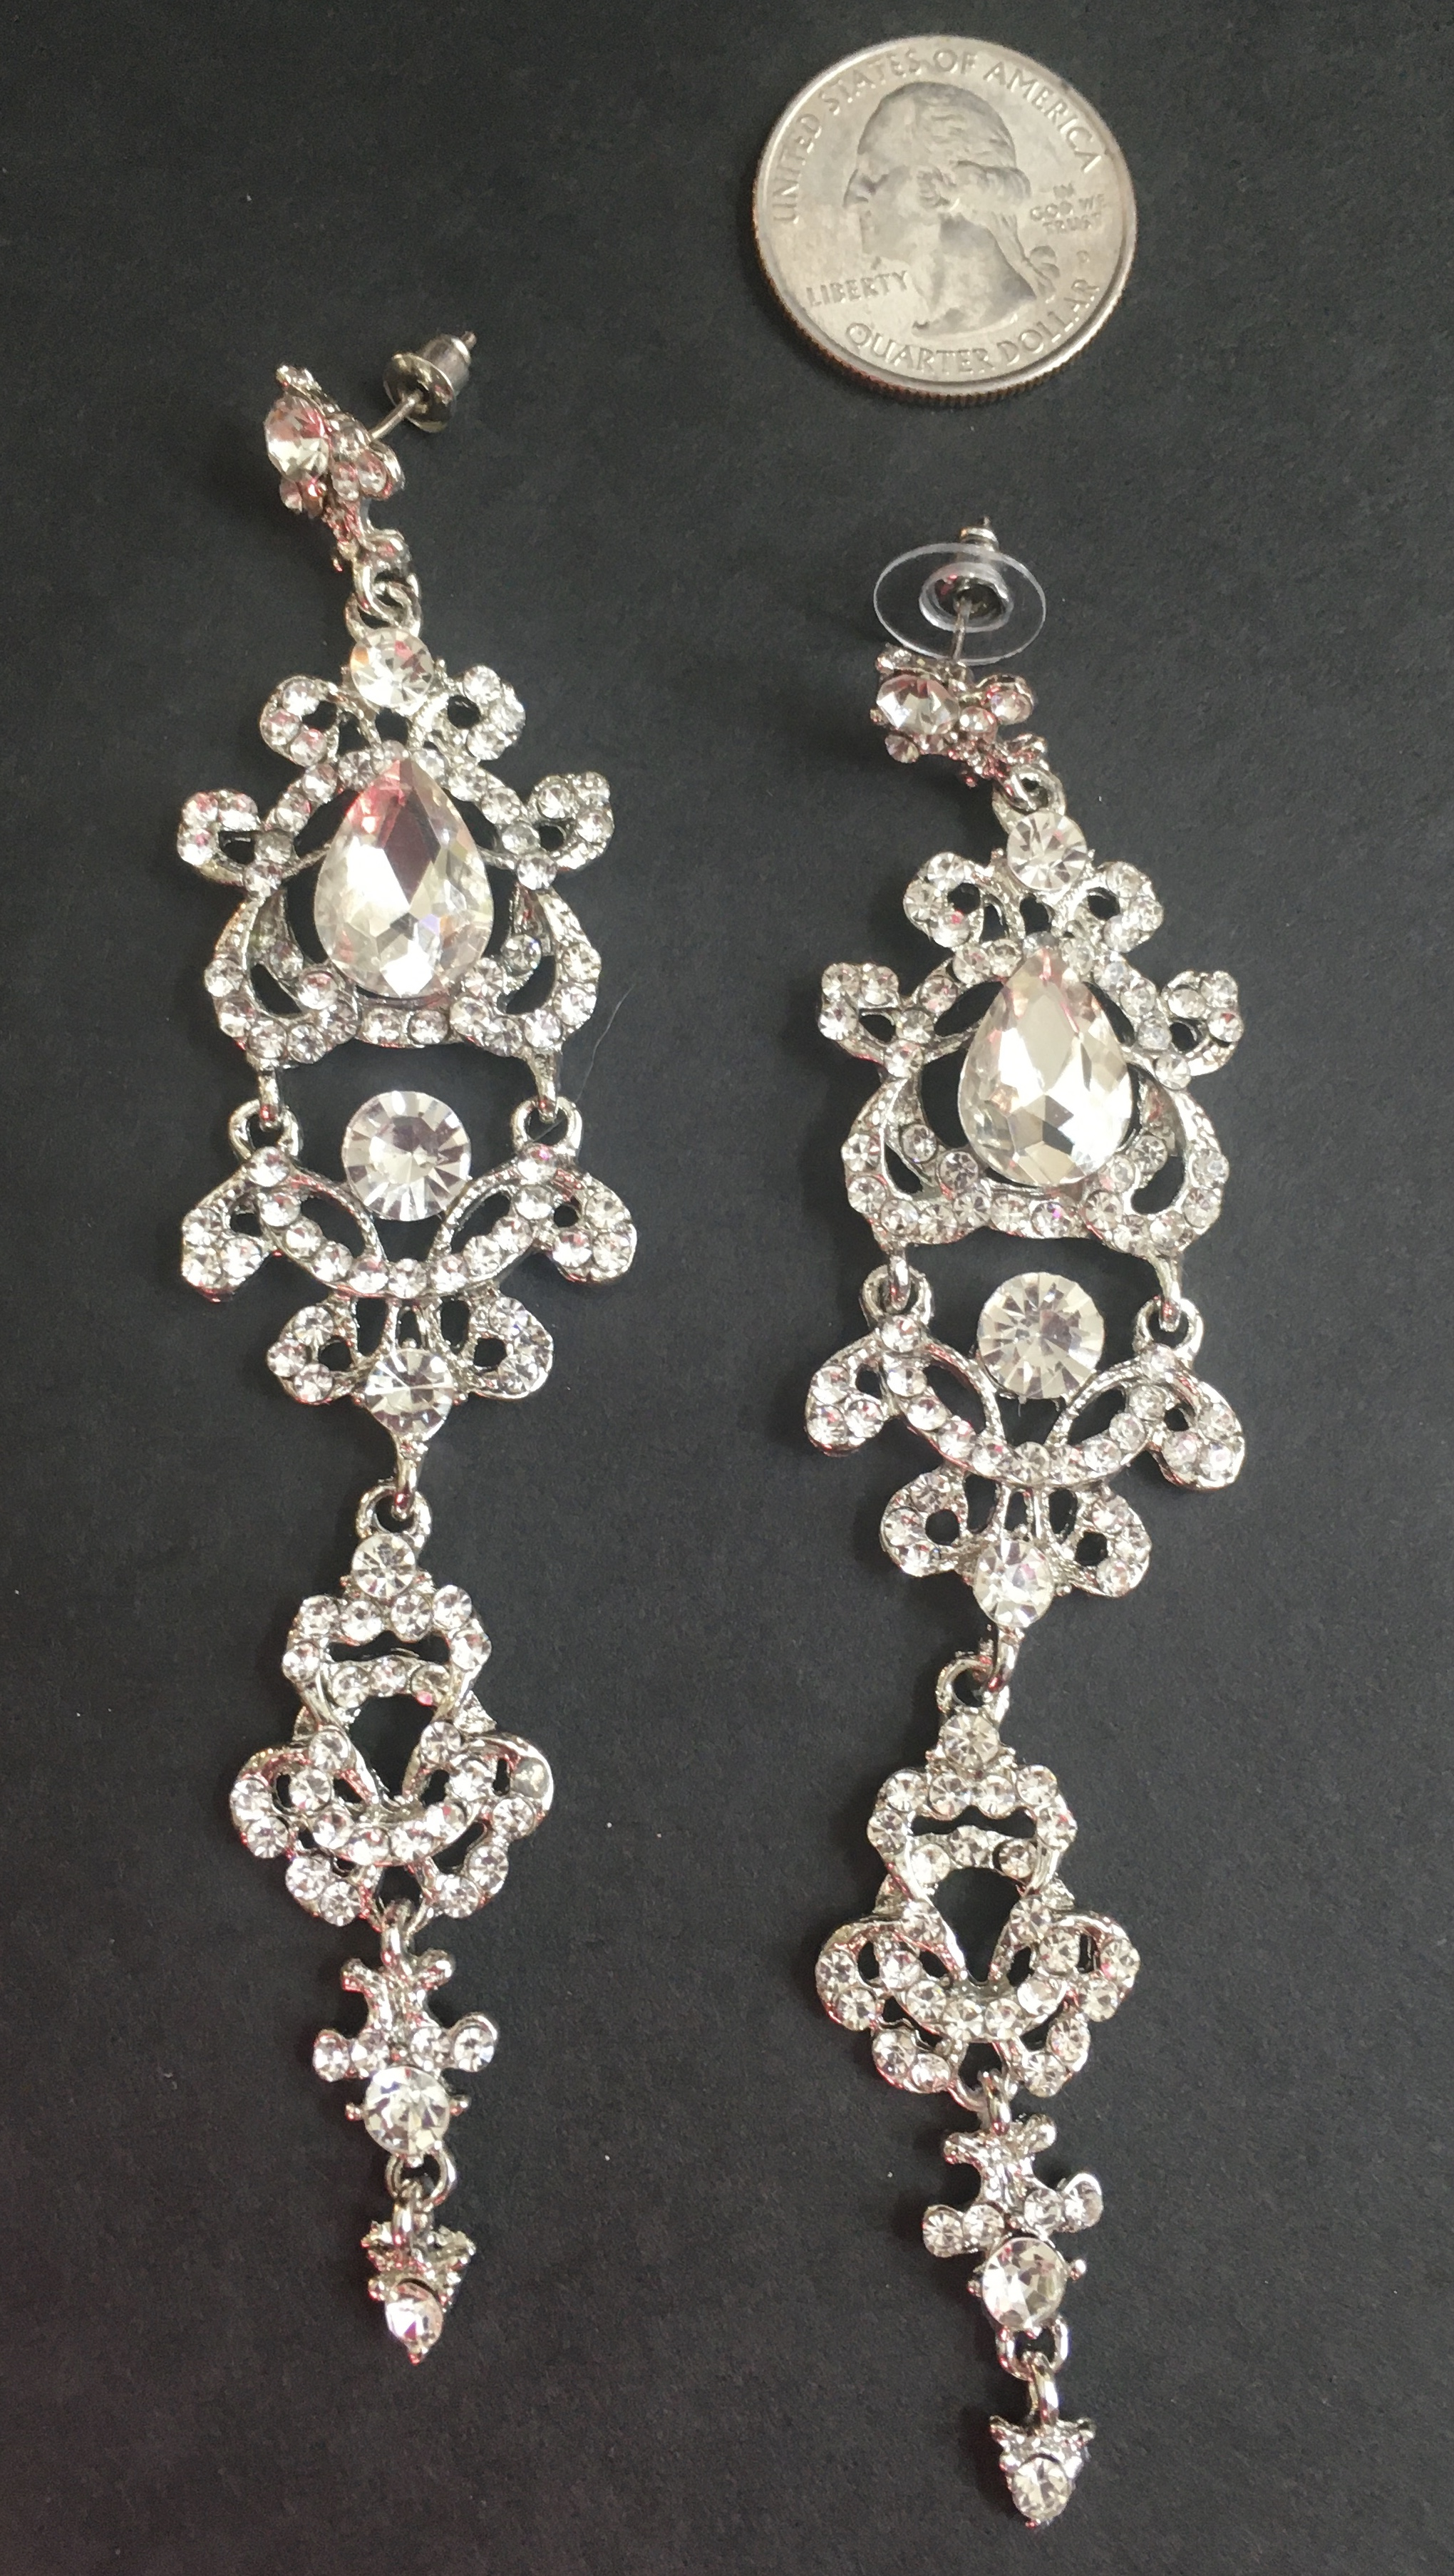 Long Diamond-esque Dangles